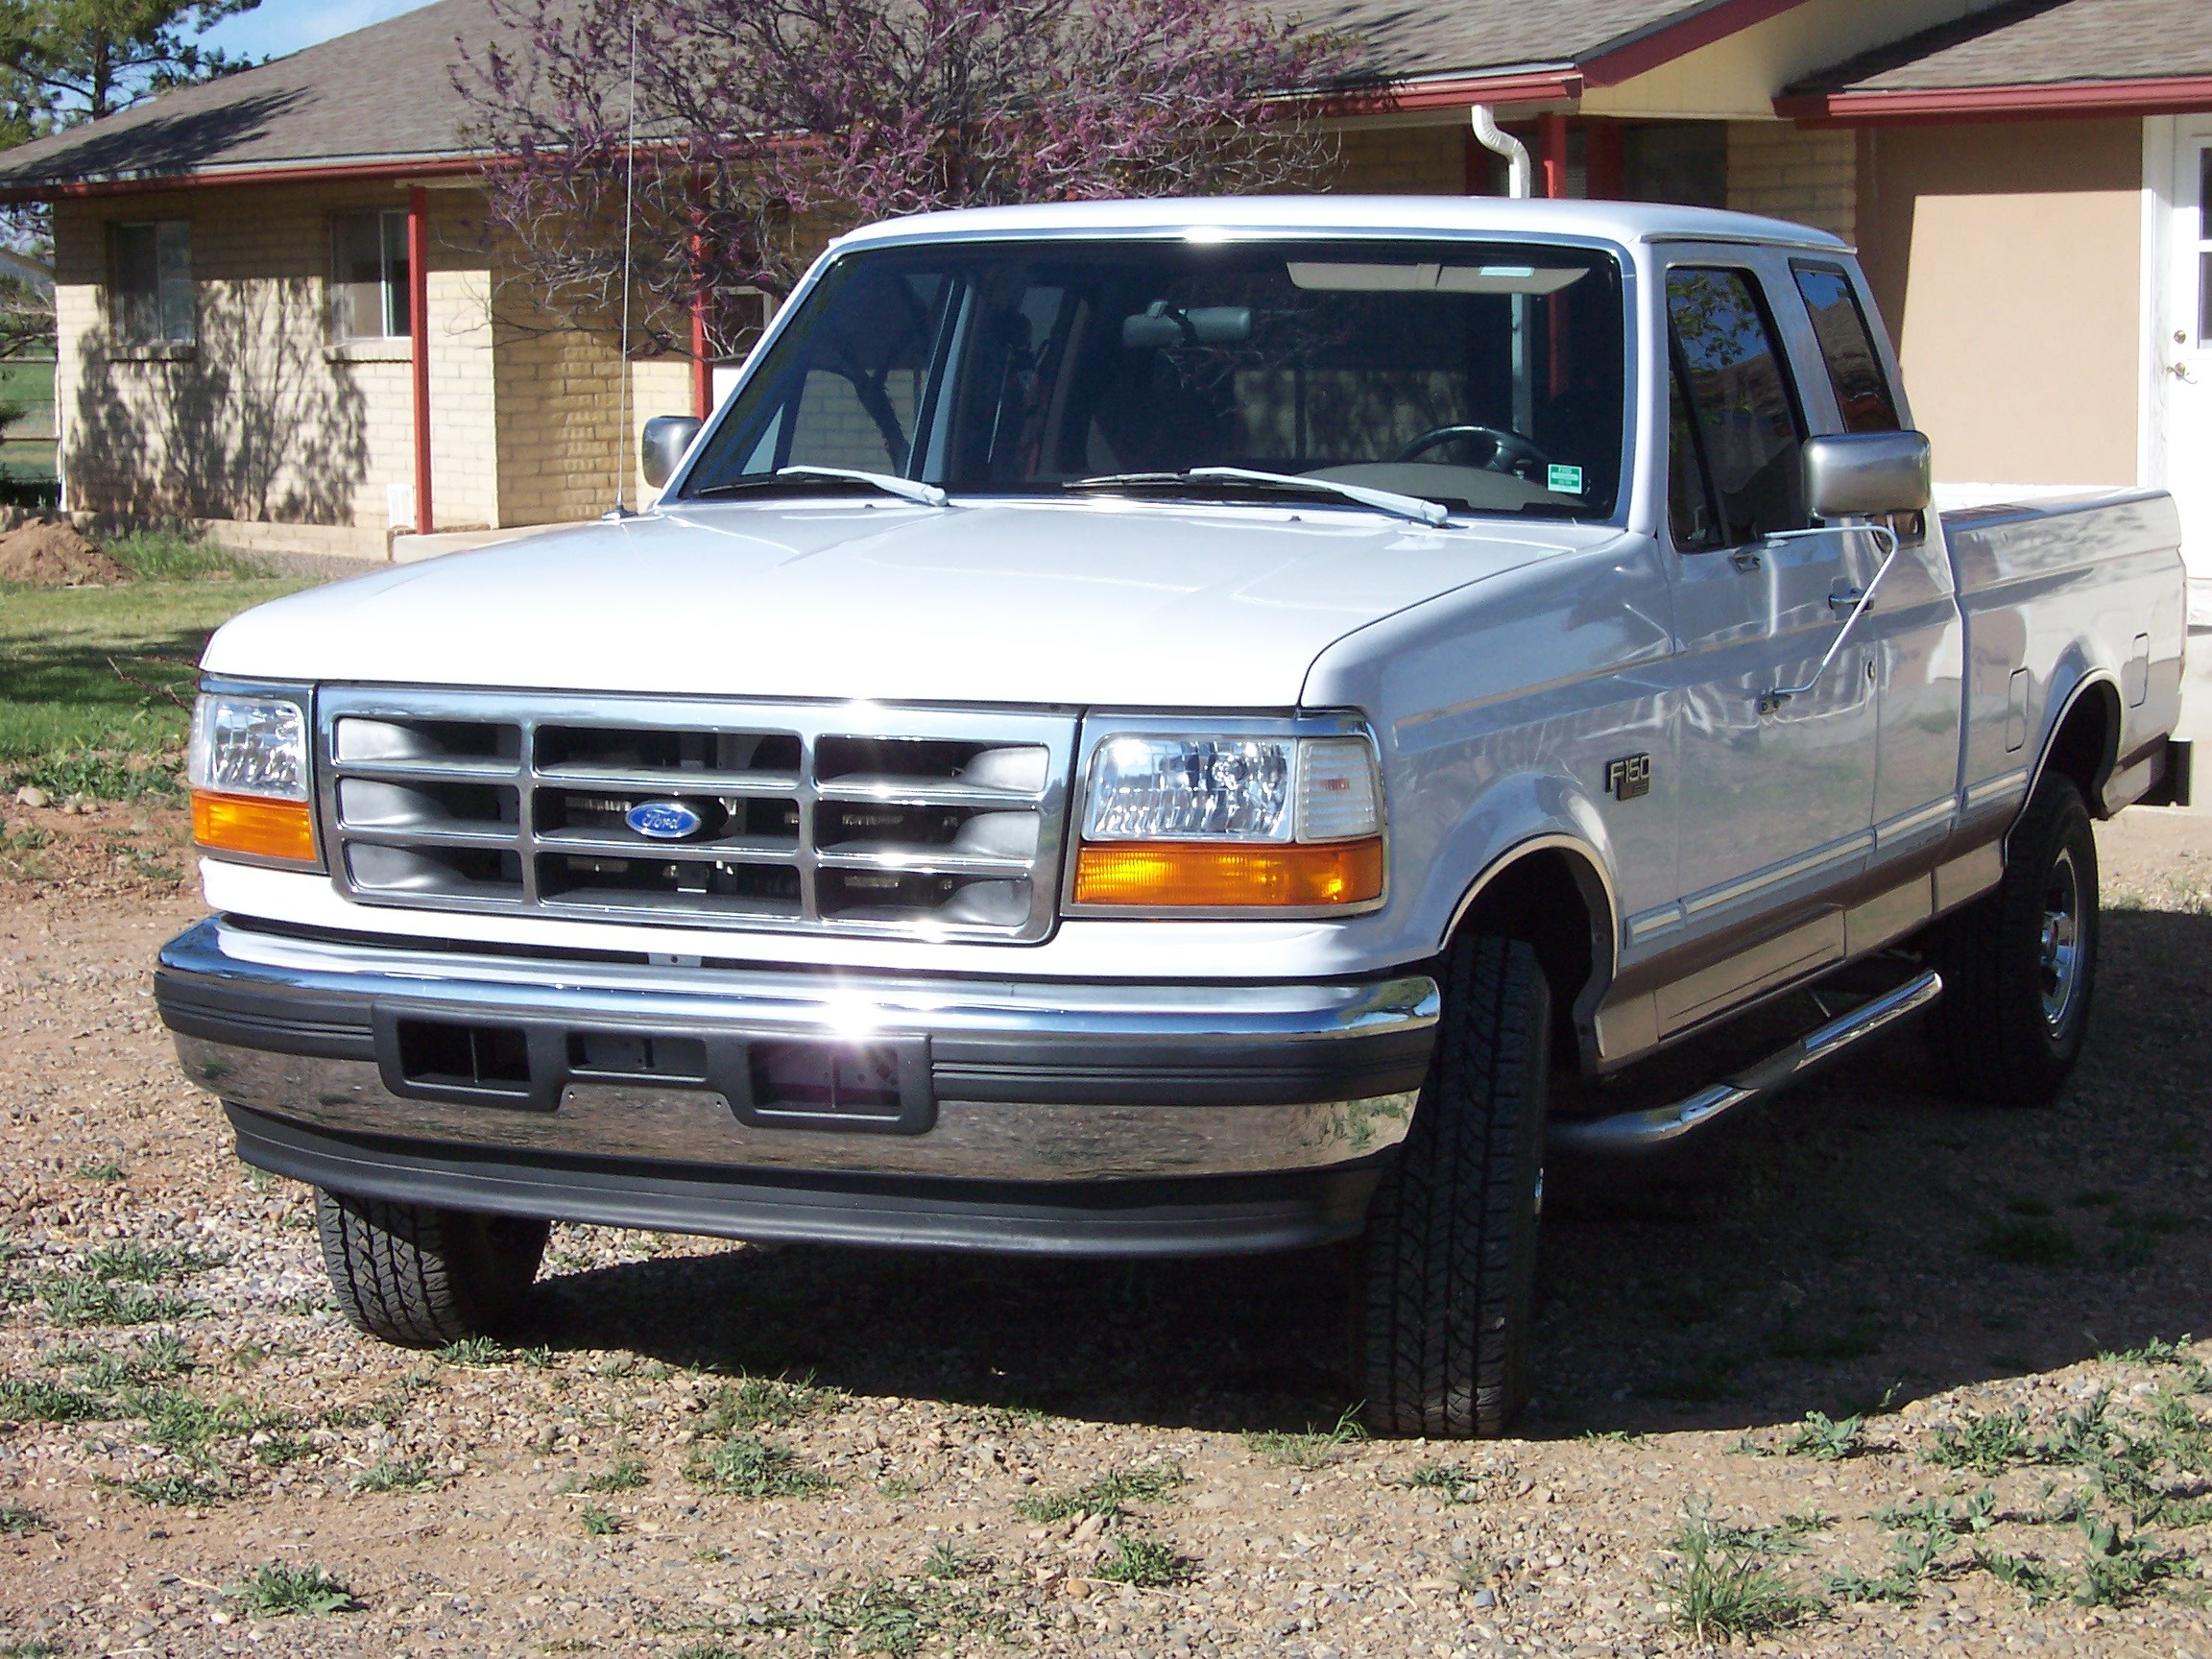 F150 Double Cab >> CL302 1996 Ford F150 Super Cab Specs, Photos, Modification Info at CarDomain